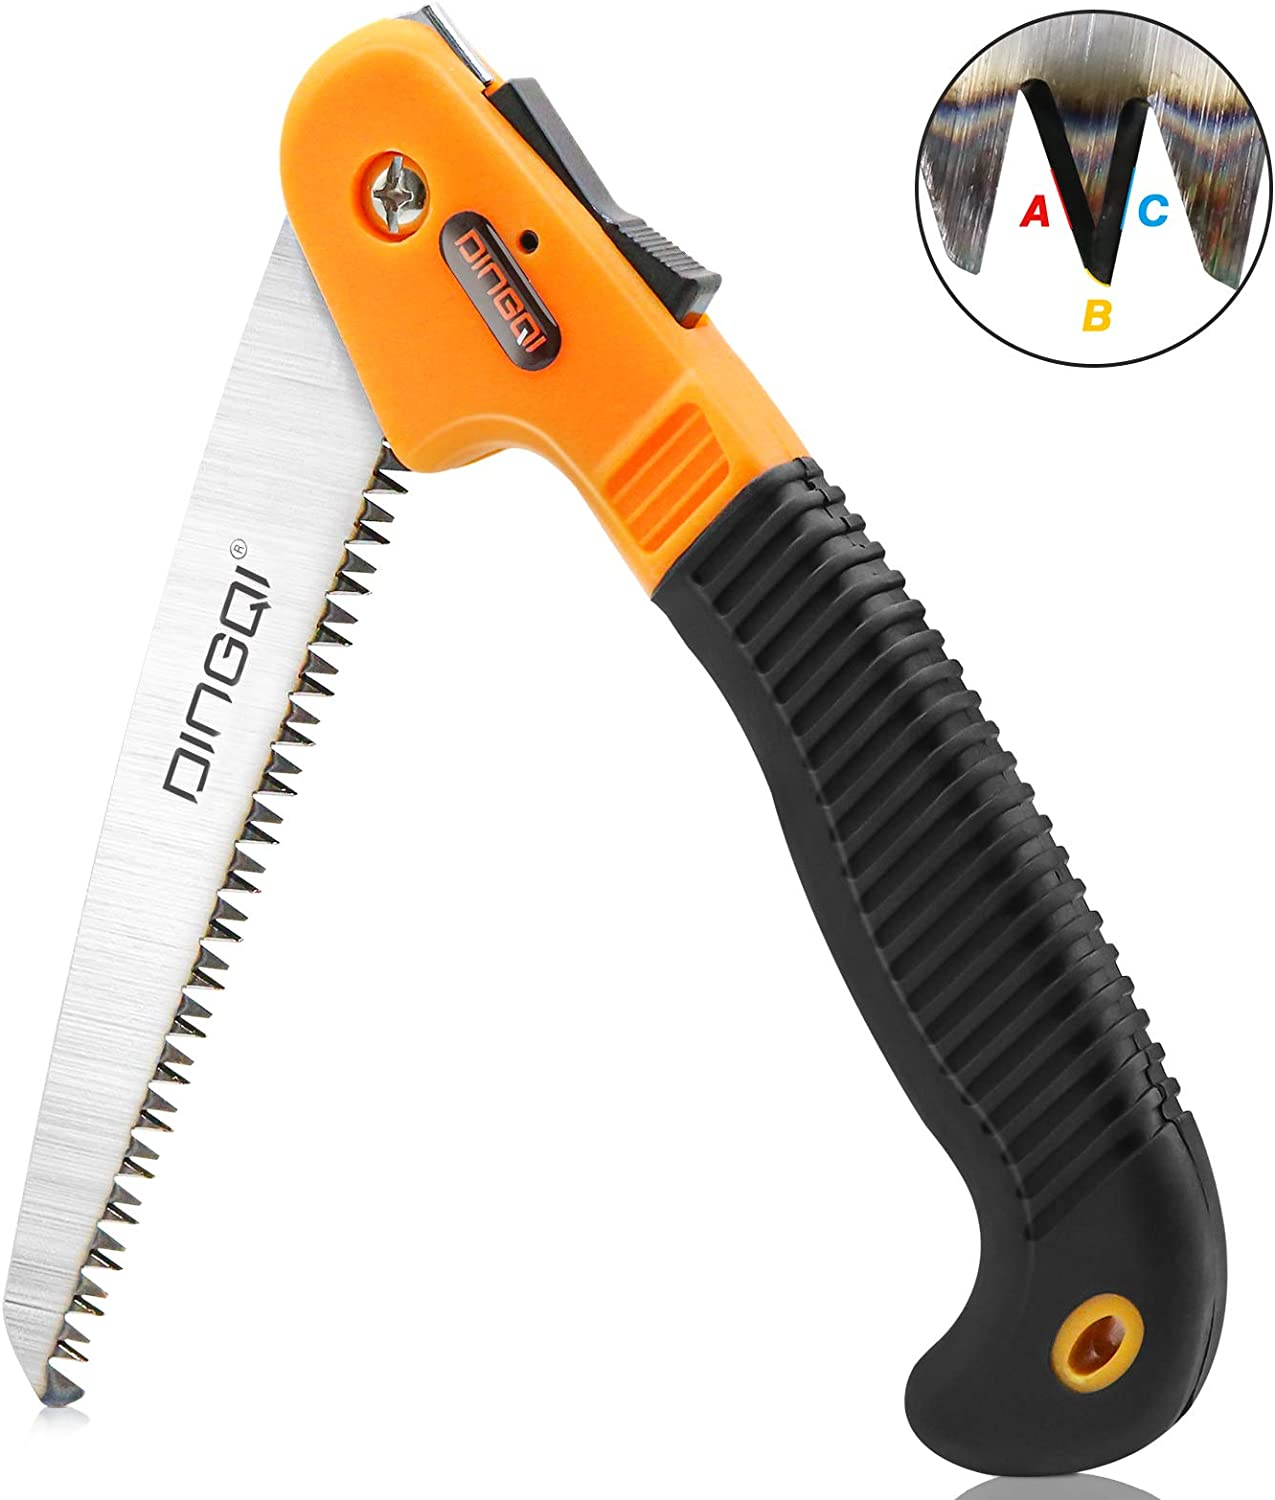 AshelyZ Folding Saw, Pruning Saw with 7 Inch, Hand Wood Saw Sharp Blade with Triple Cut Tooth, No-Slip Handle More Safe, Folding Hand Saws for Camping, Garden Pruning, Hiking is Essential Tools